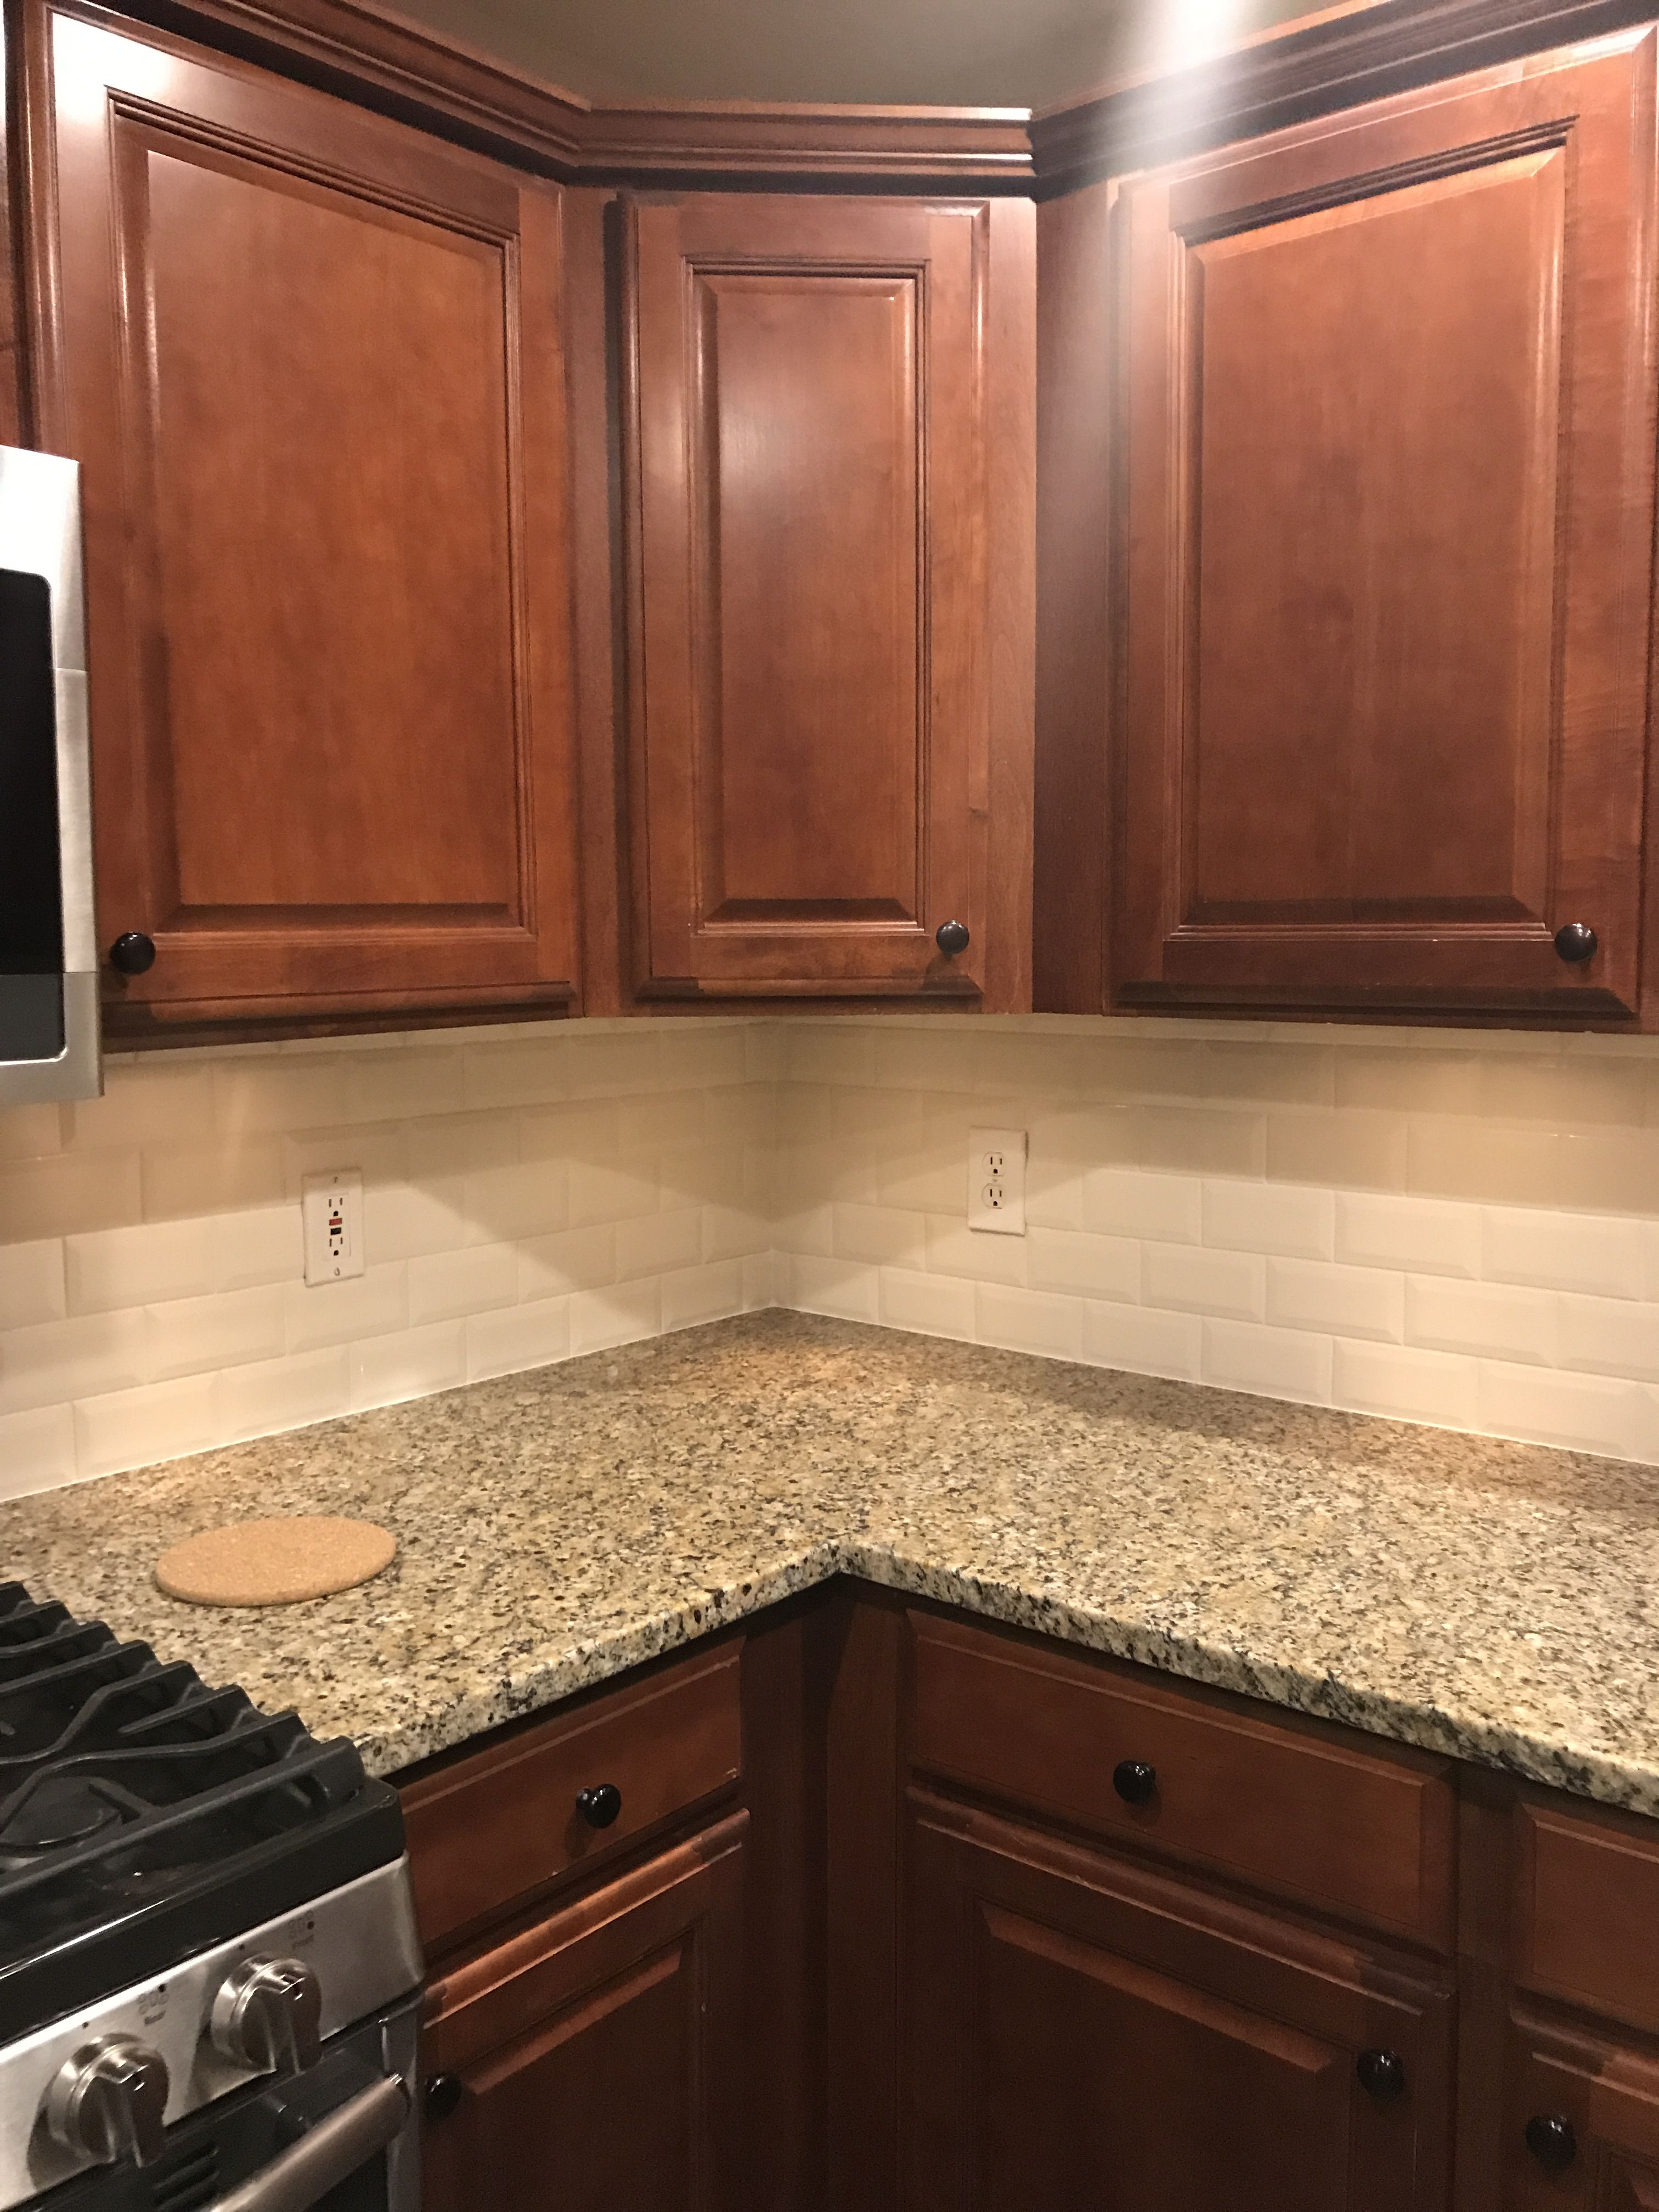 - Almond Glossy Beveled Tile (wayfair.com) With 1/16